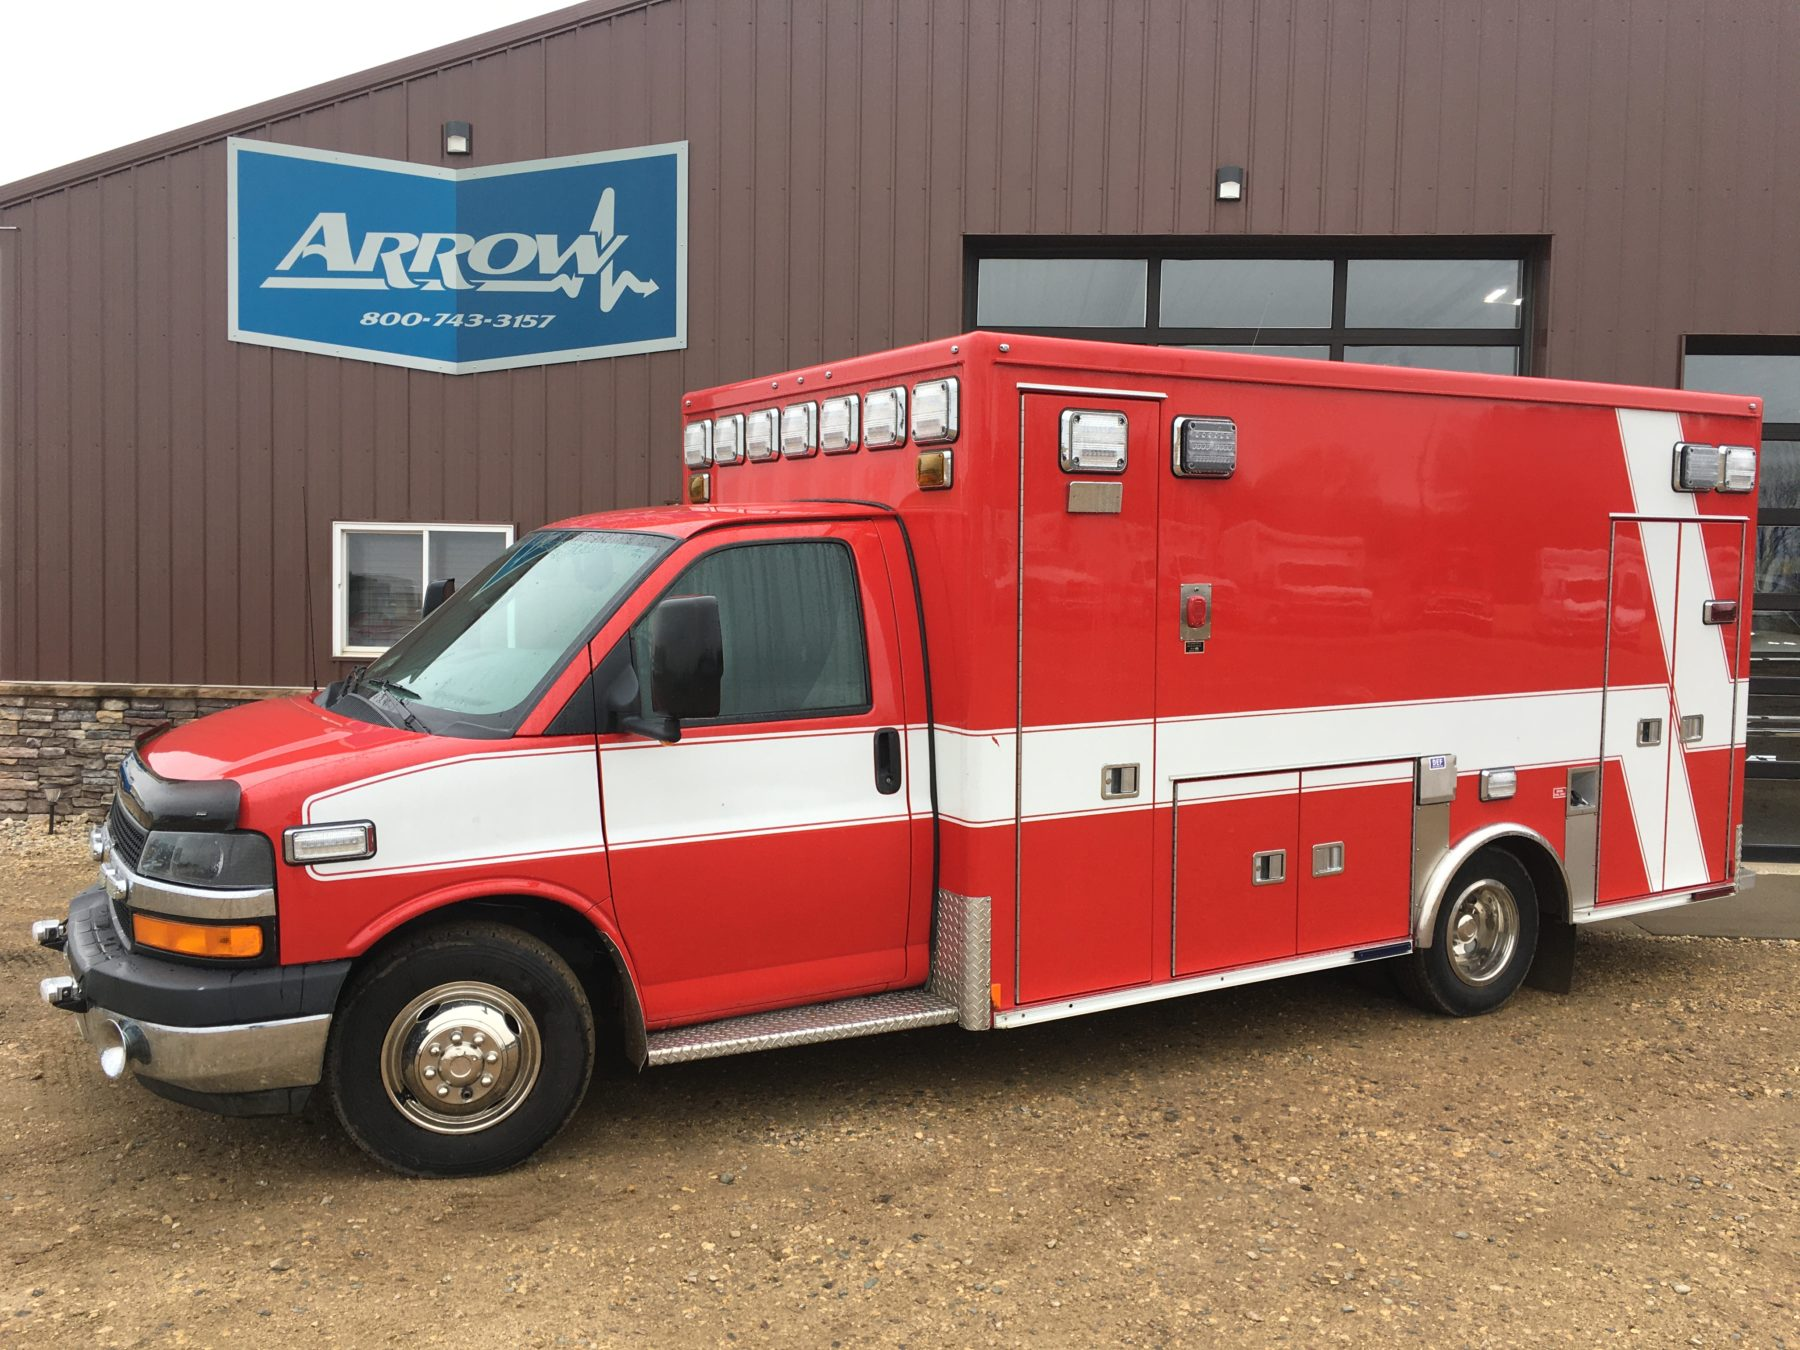 2011 Chevrolet G4500 Type 3 Ambulance For Sale – Picture 1